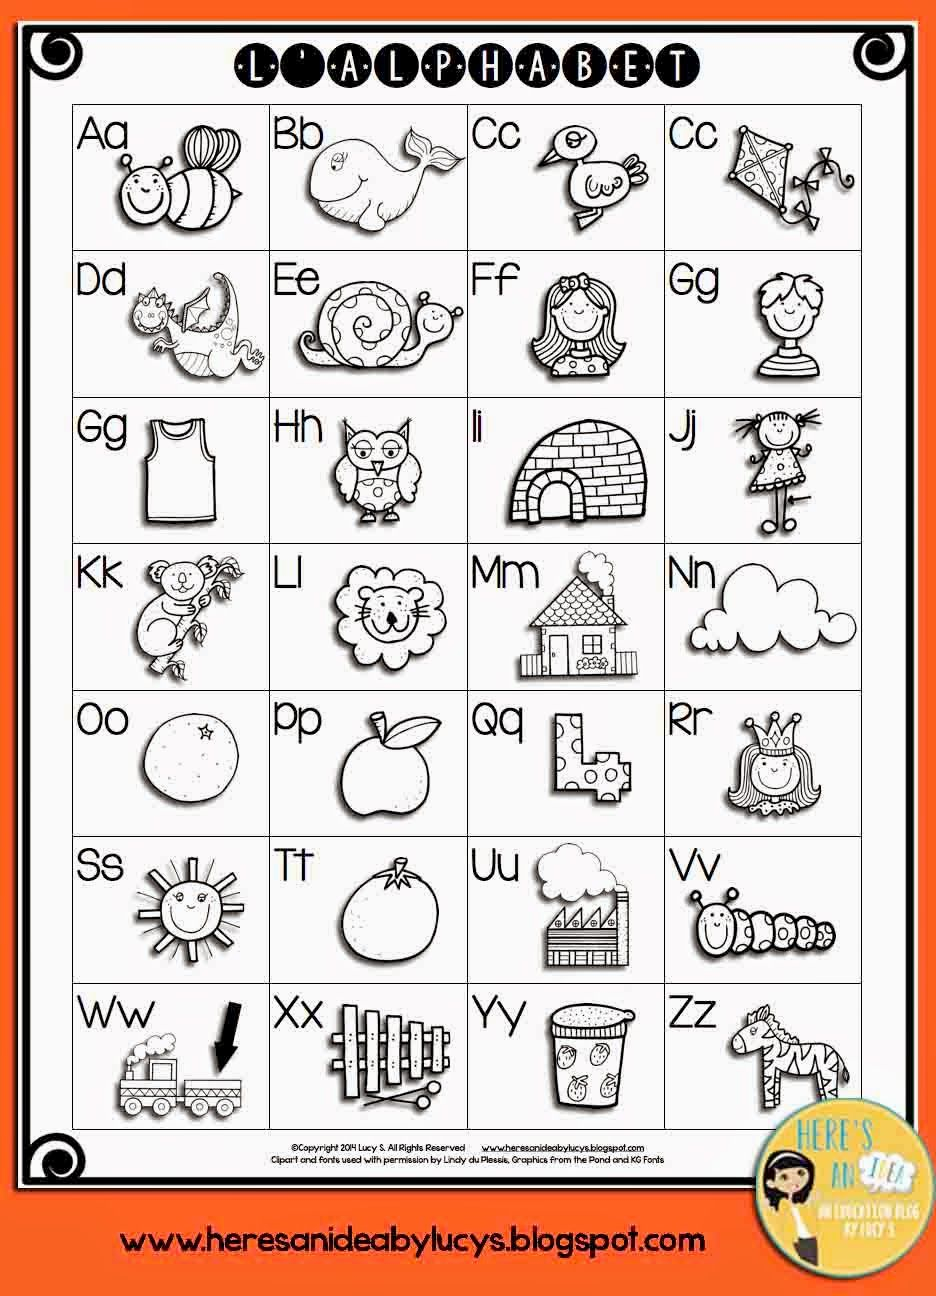 French Alphabet Chart - Letters & Images | French Alphabet within Alphabet Worksheets In French